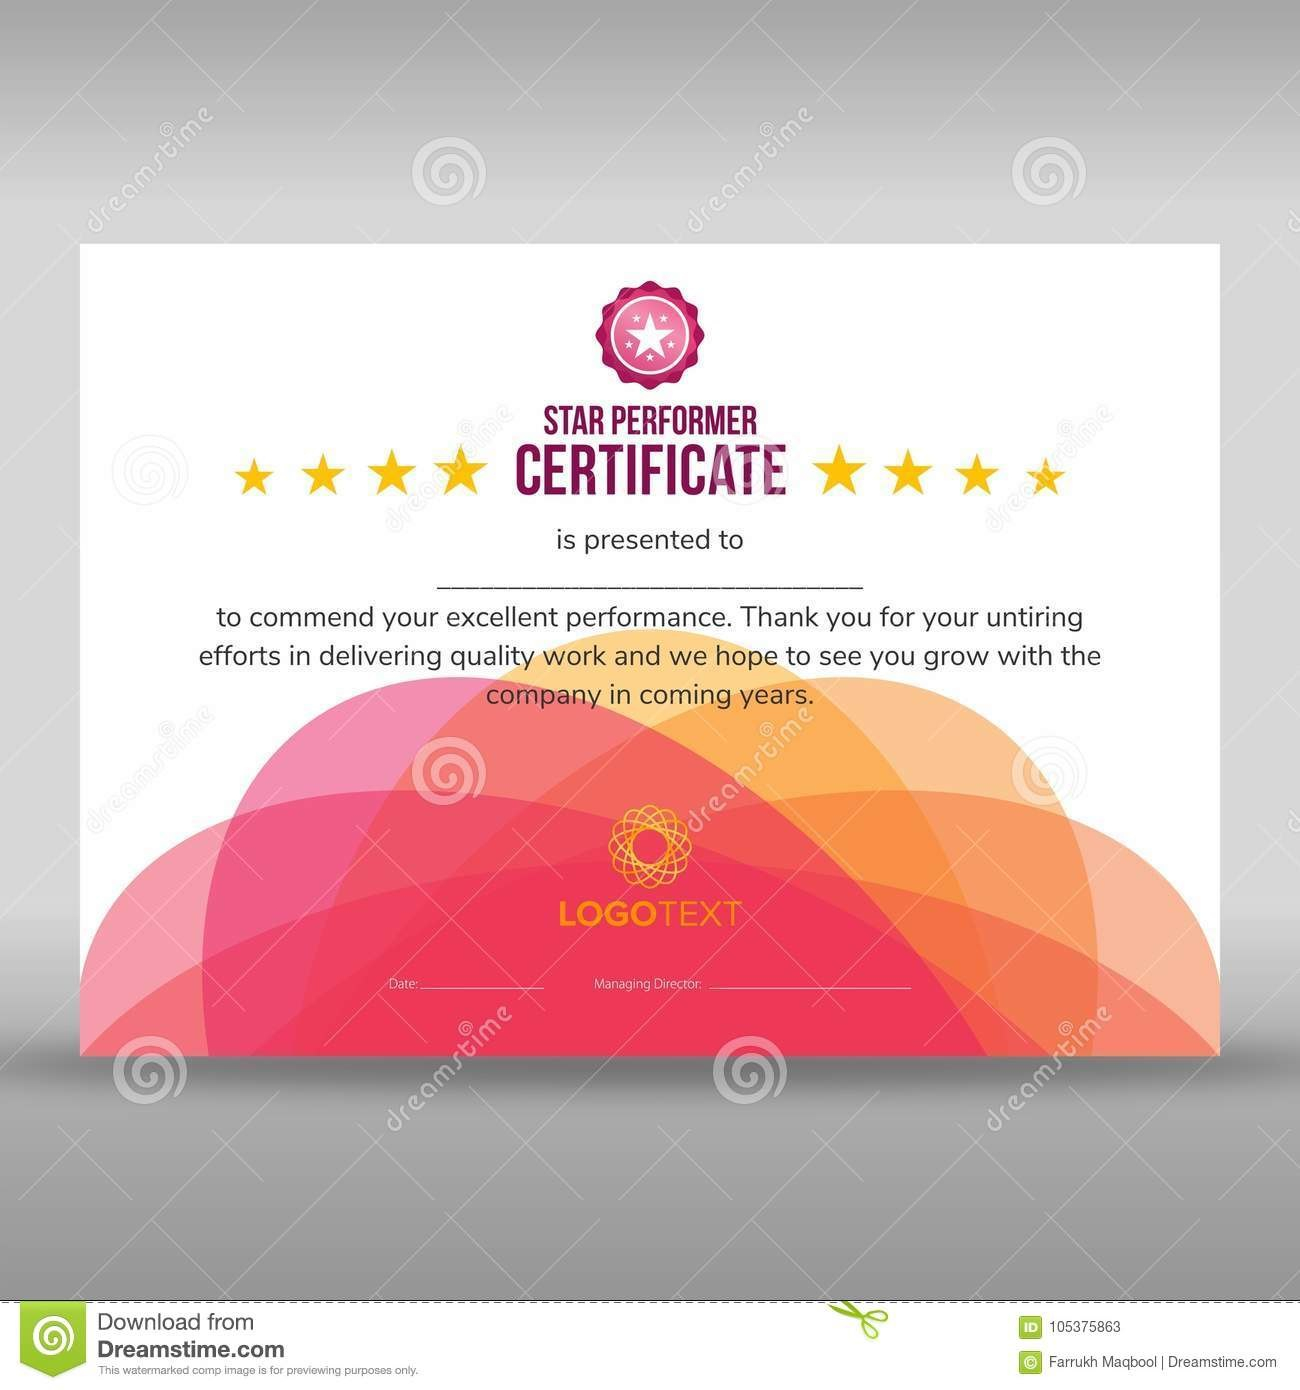 Abstract Creative Pink Star Performer Certificate Stock Vector Regarding Star Performer Certificate Templates